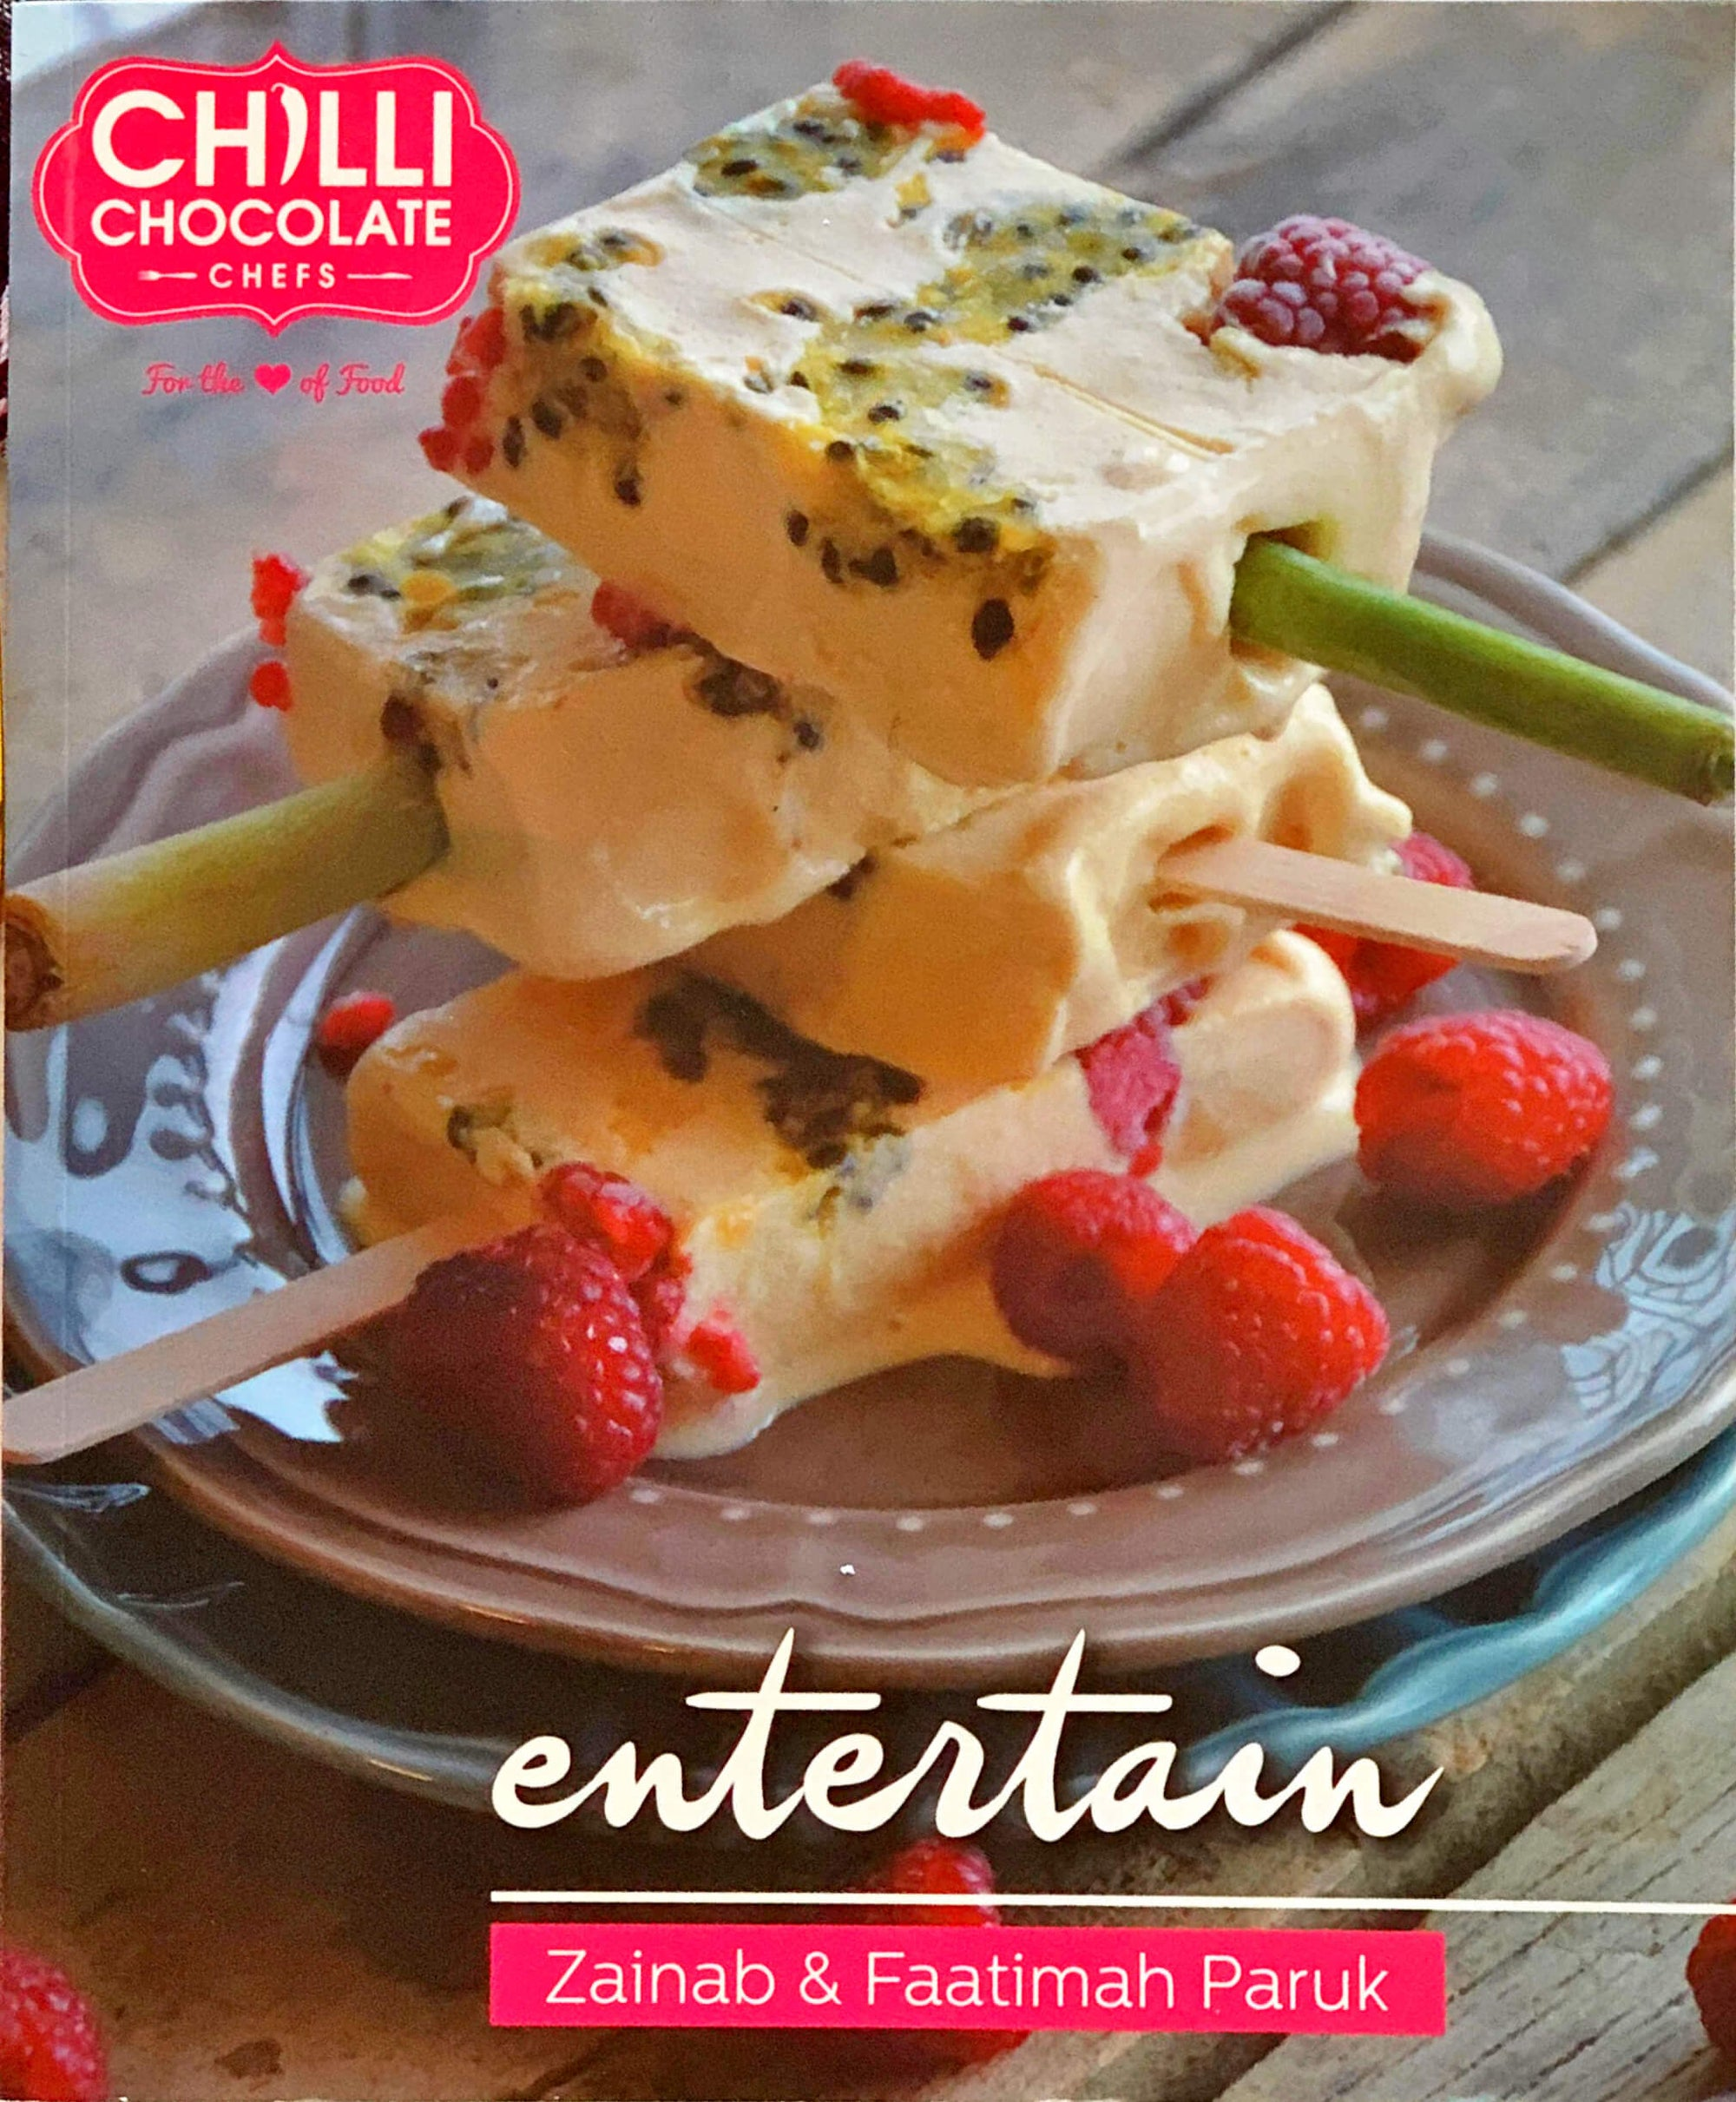 Entertain Recipe Book - Chilli Chocolate Chefs